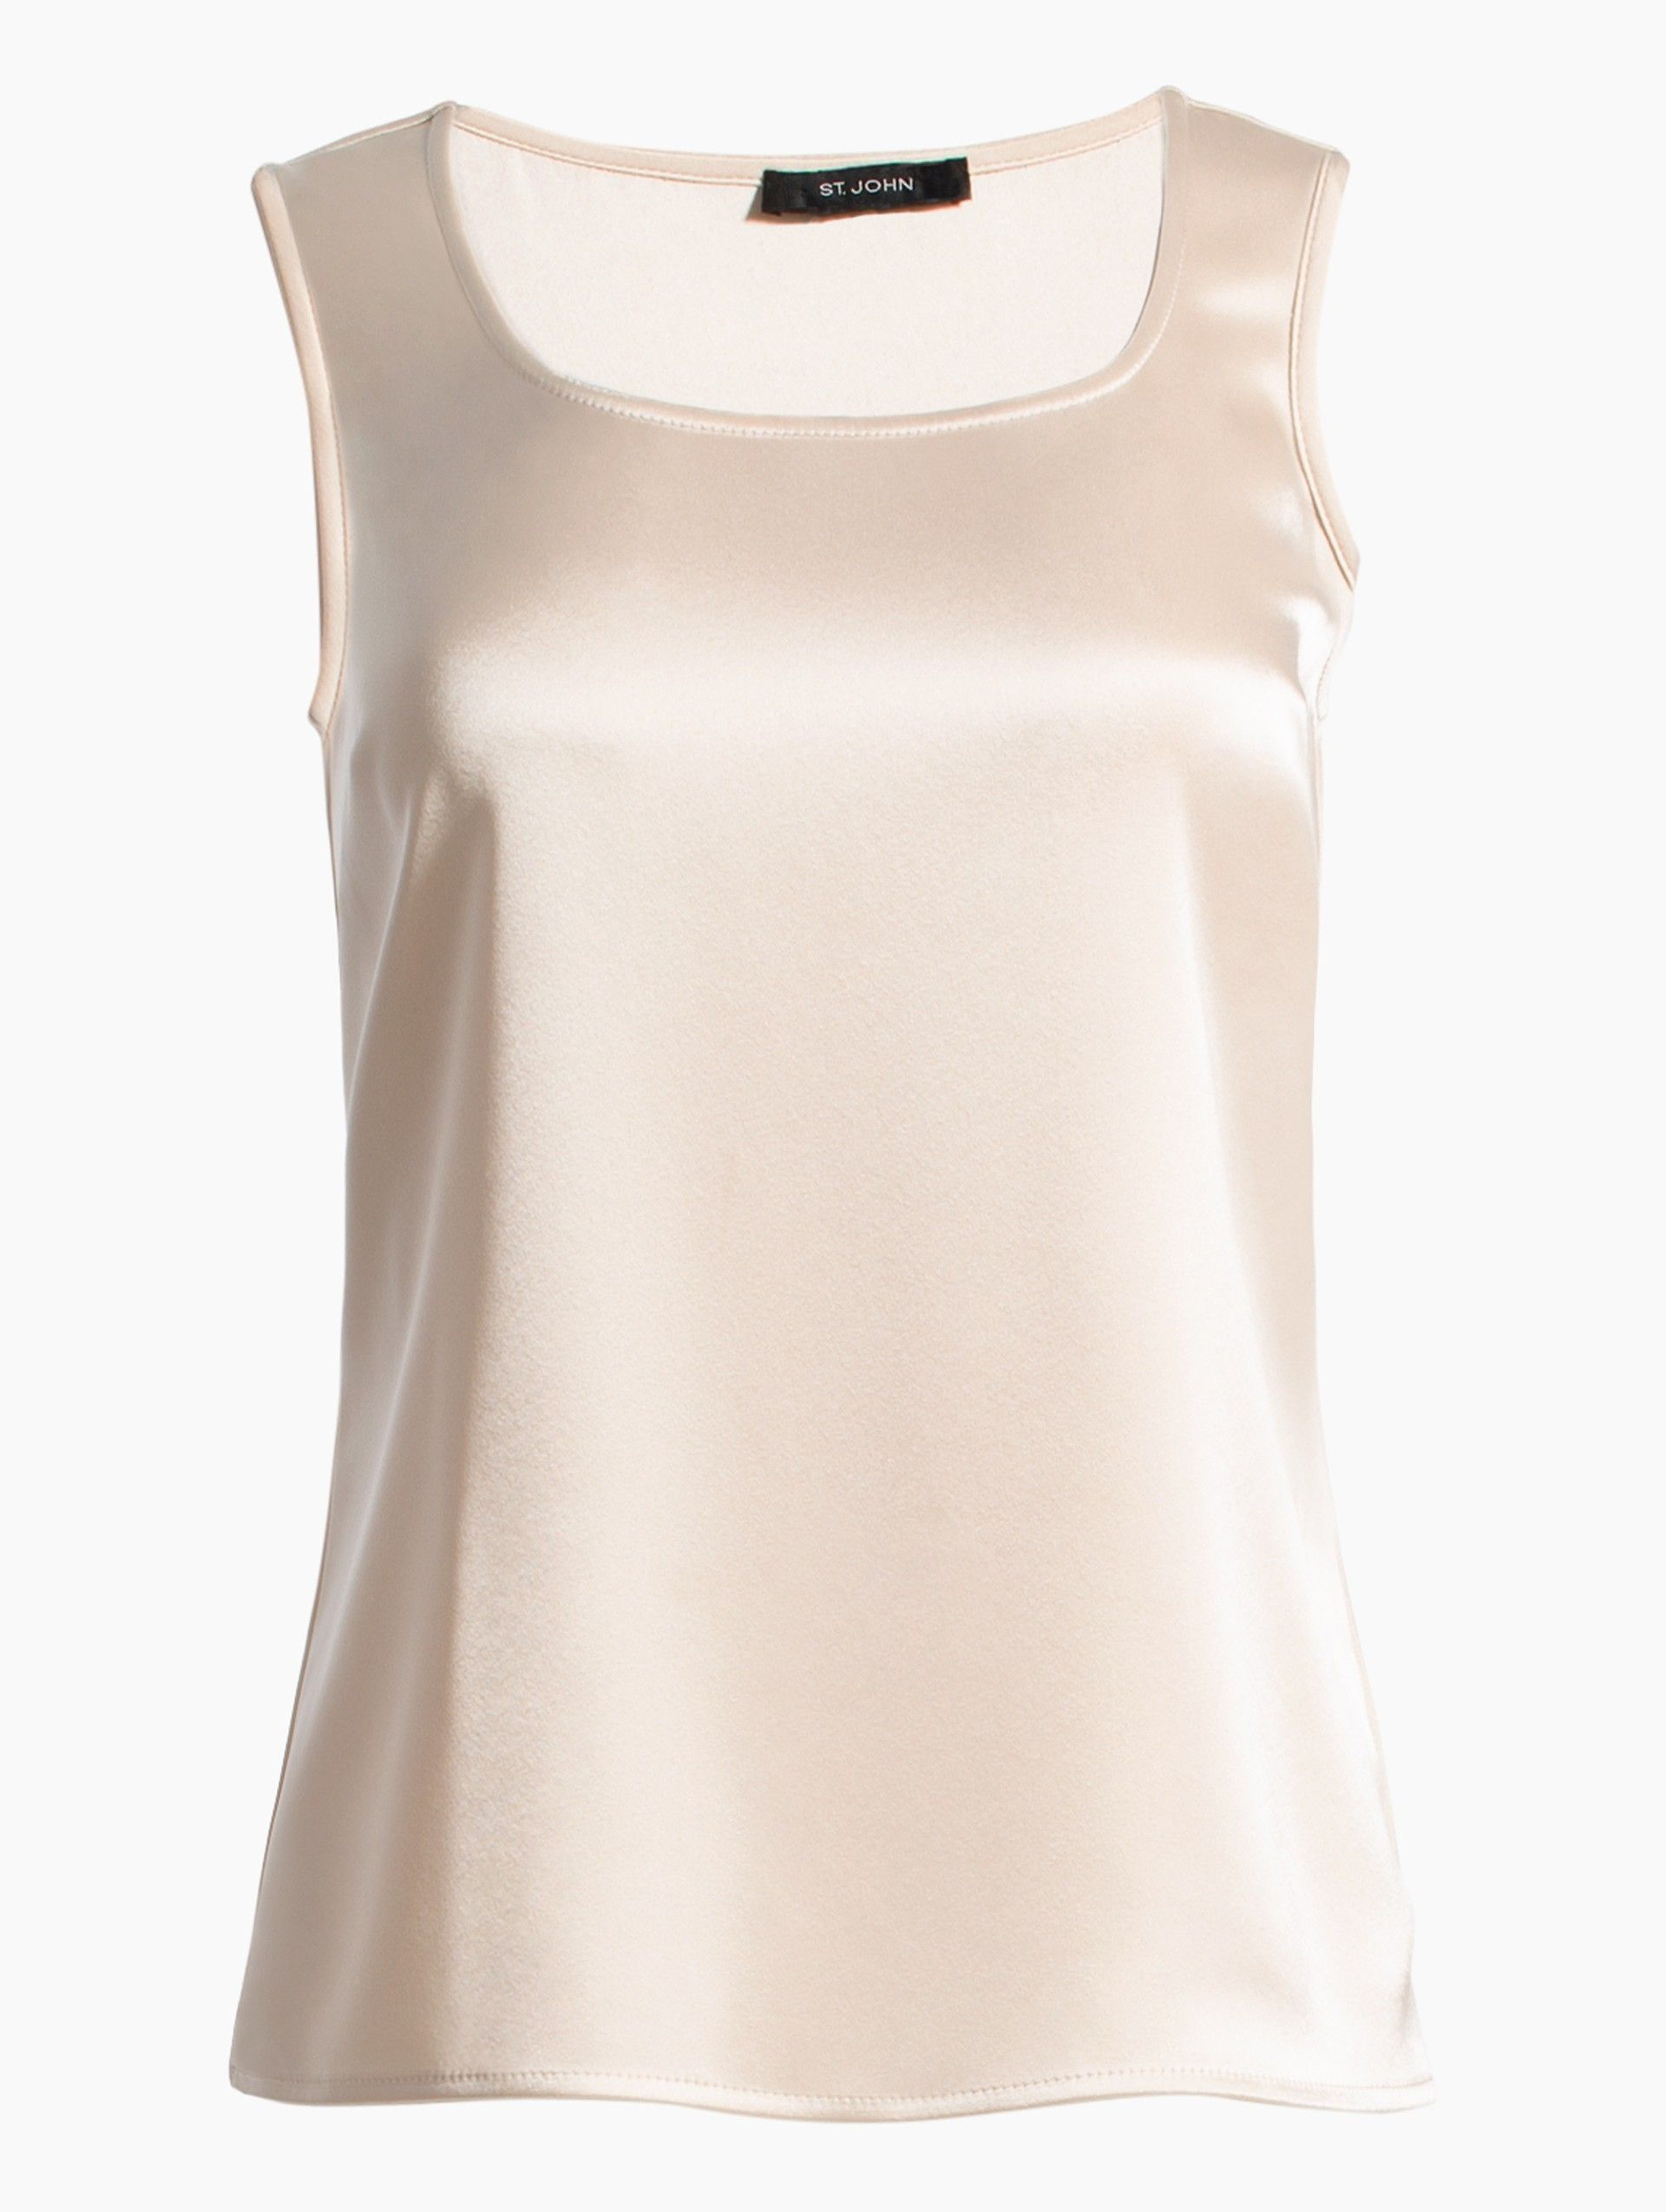 Saint John Liquid Satin Tank Top